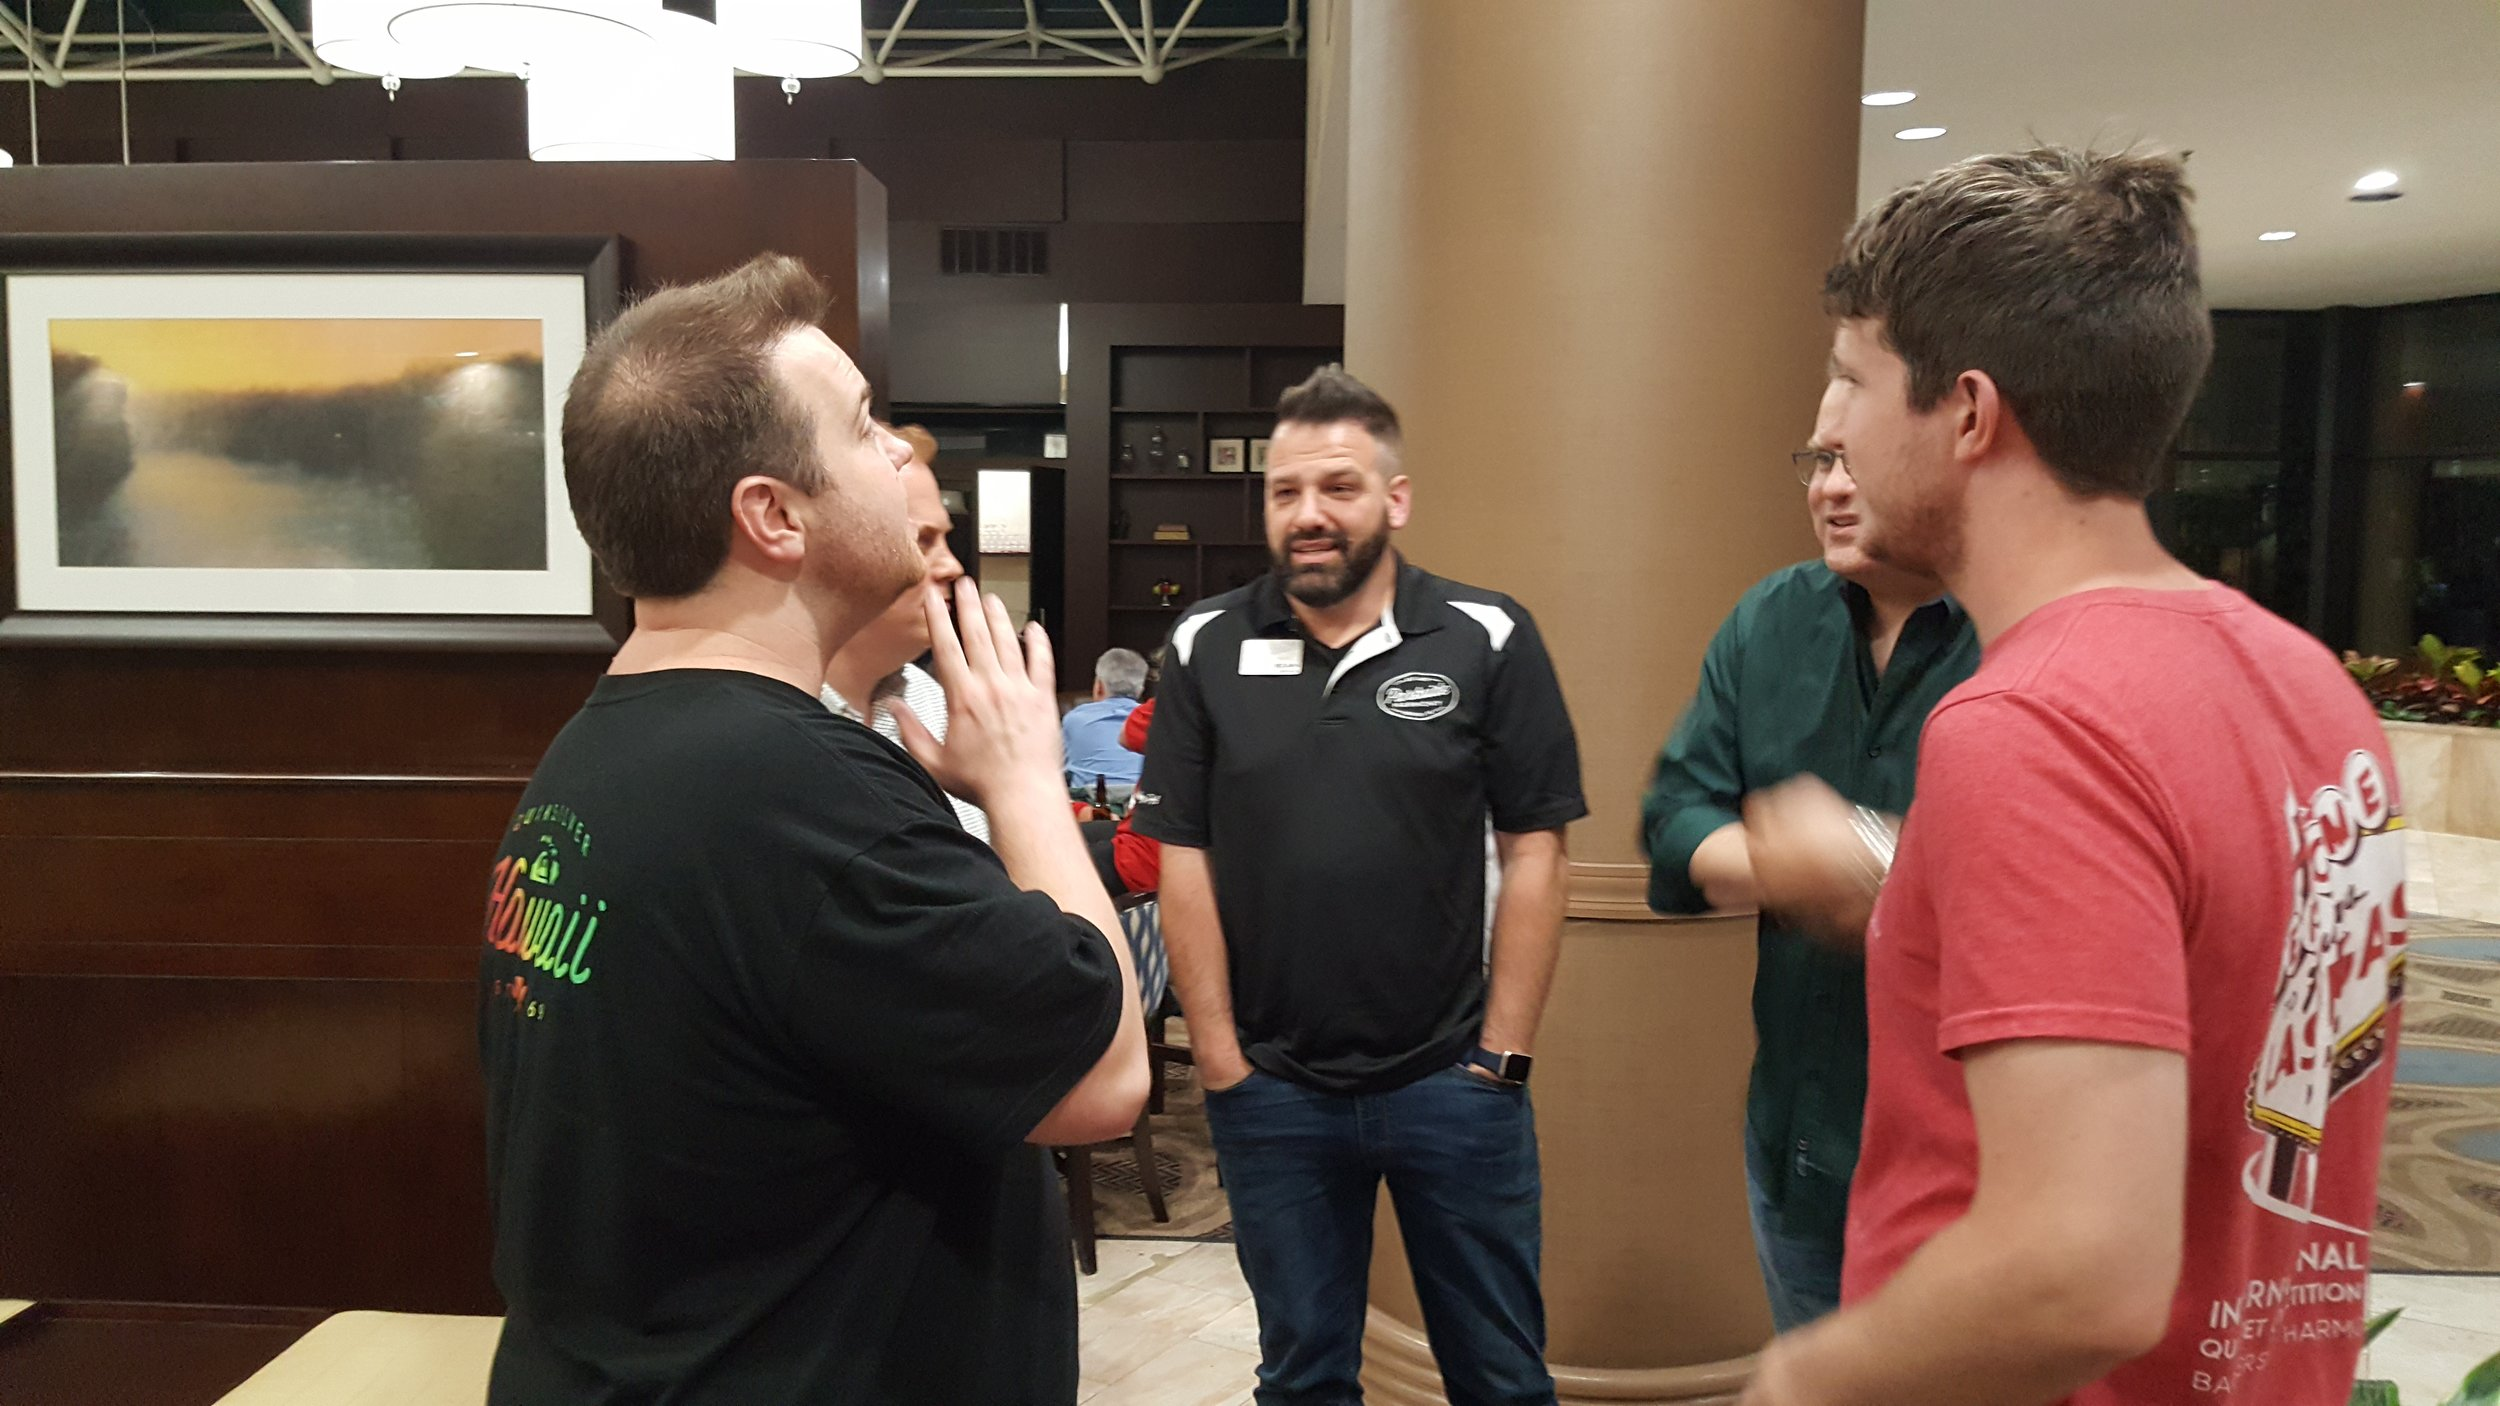 A pick-up quartet in the hotel lobby with Tim Waurick, Tyler Rackley, and Sean Devine.